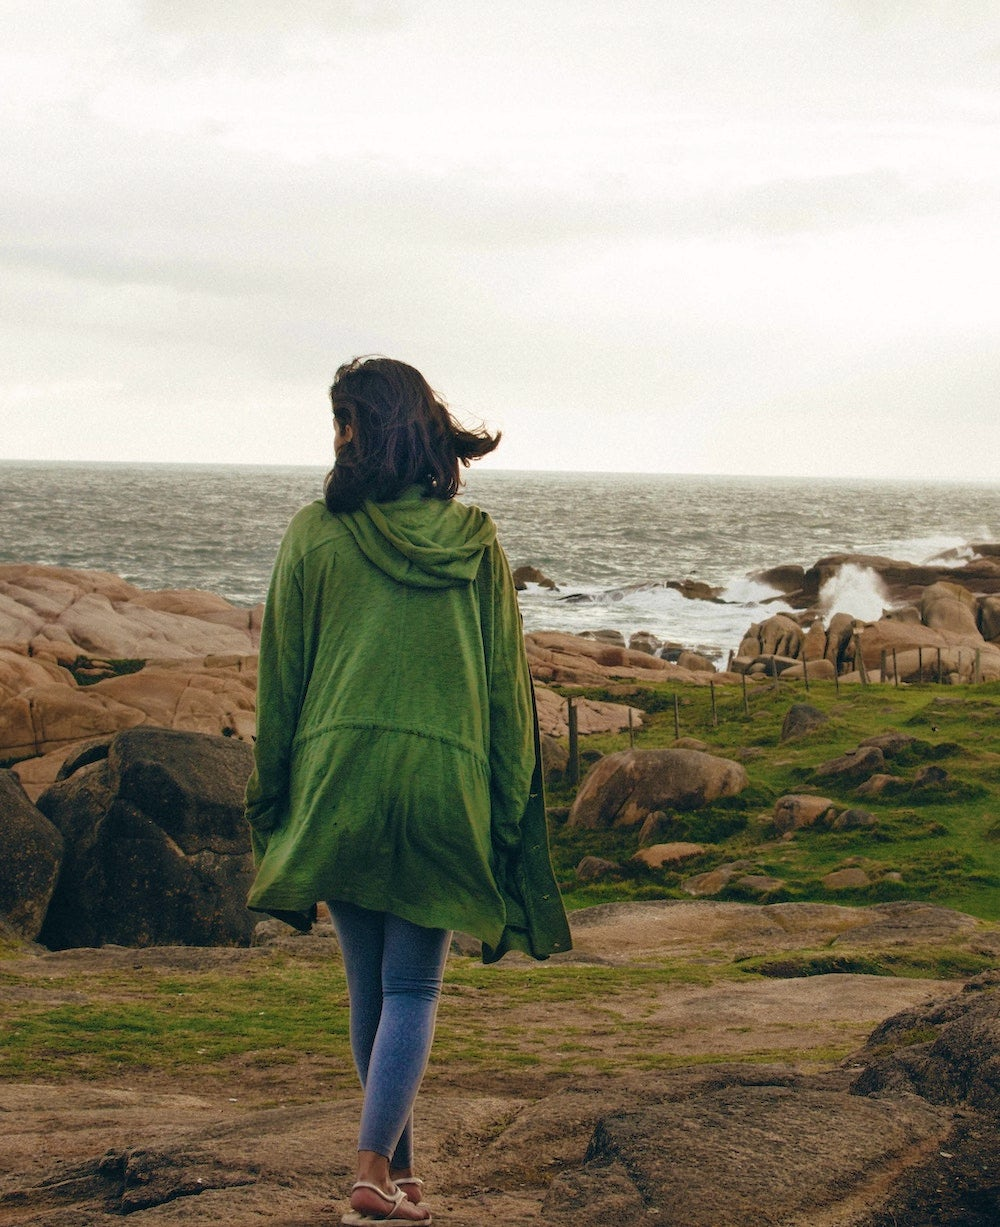 A woman takes a walk on a rocky beach in a green jacket.